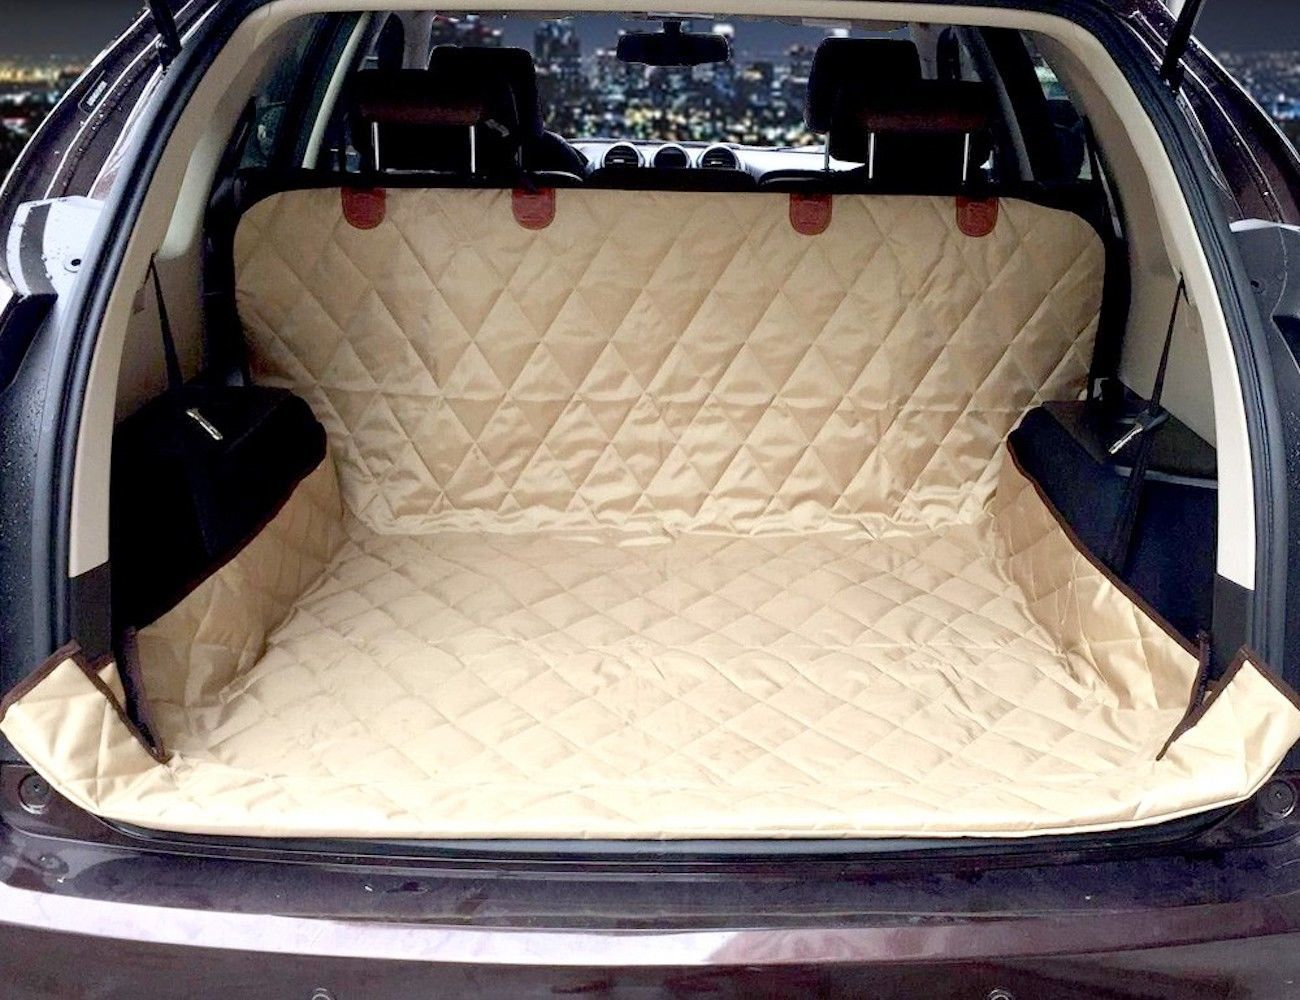 SUV+Car+Trunk+Mat+For+Pets